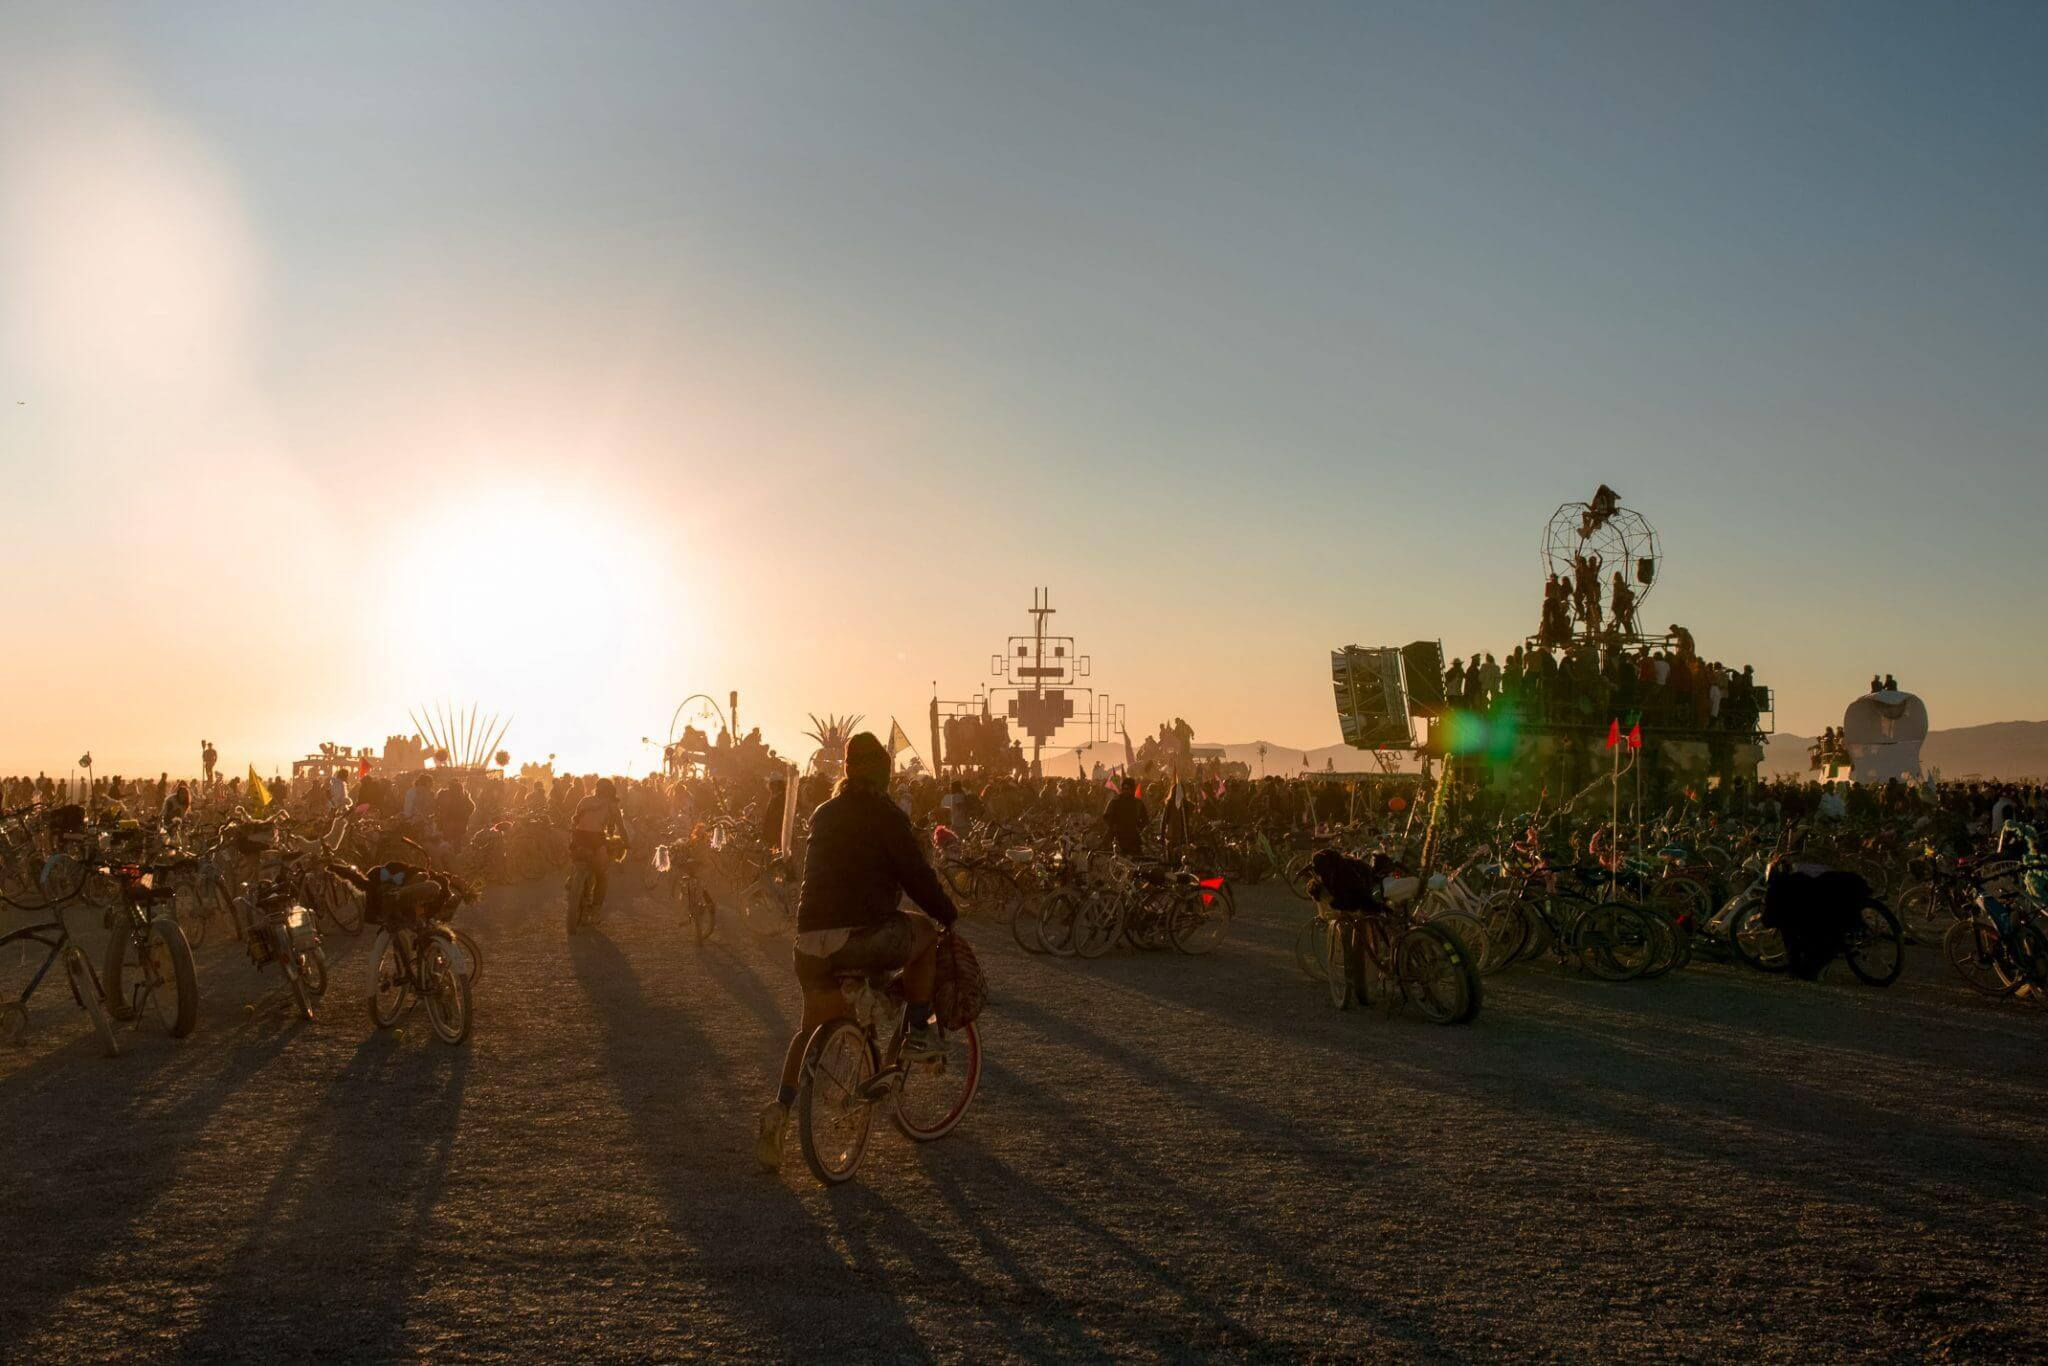 20 top tips if you're heading to Burning Man 2020